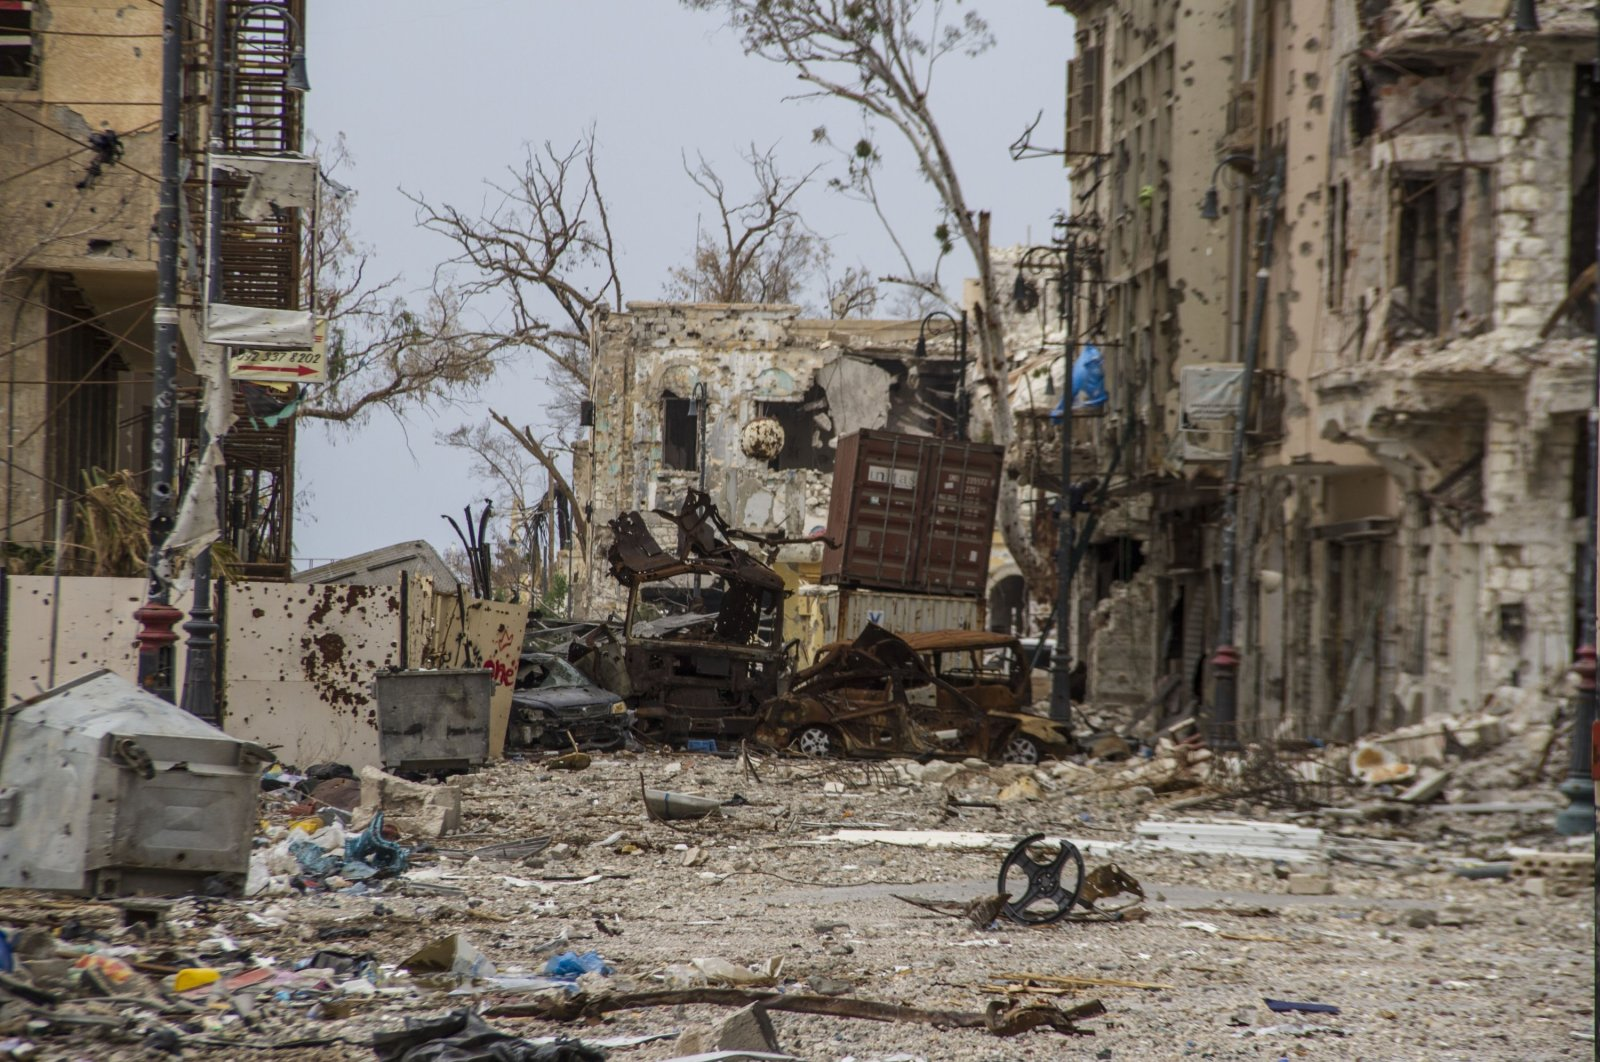 Damaged homes on a street in Benghazi, Libya, March 24, 2015. (AP File Photo)